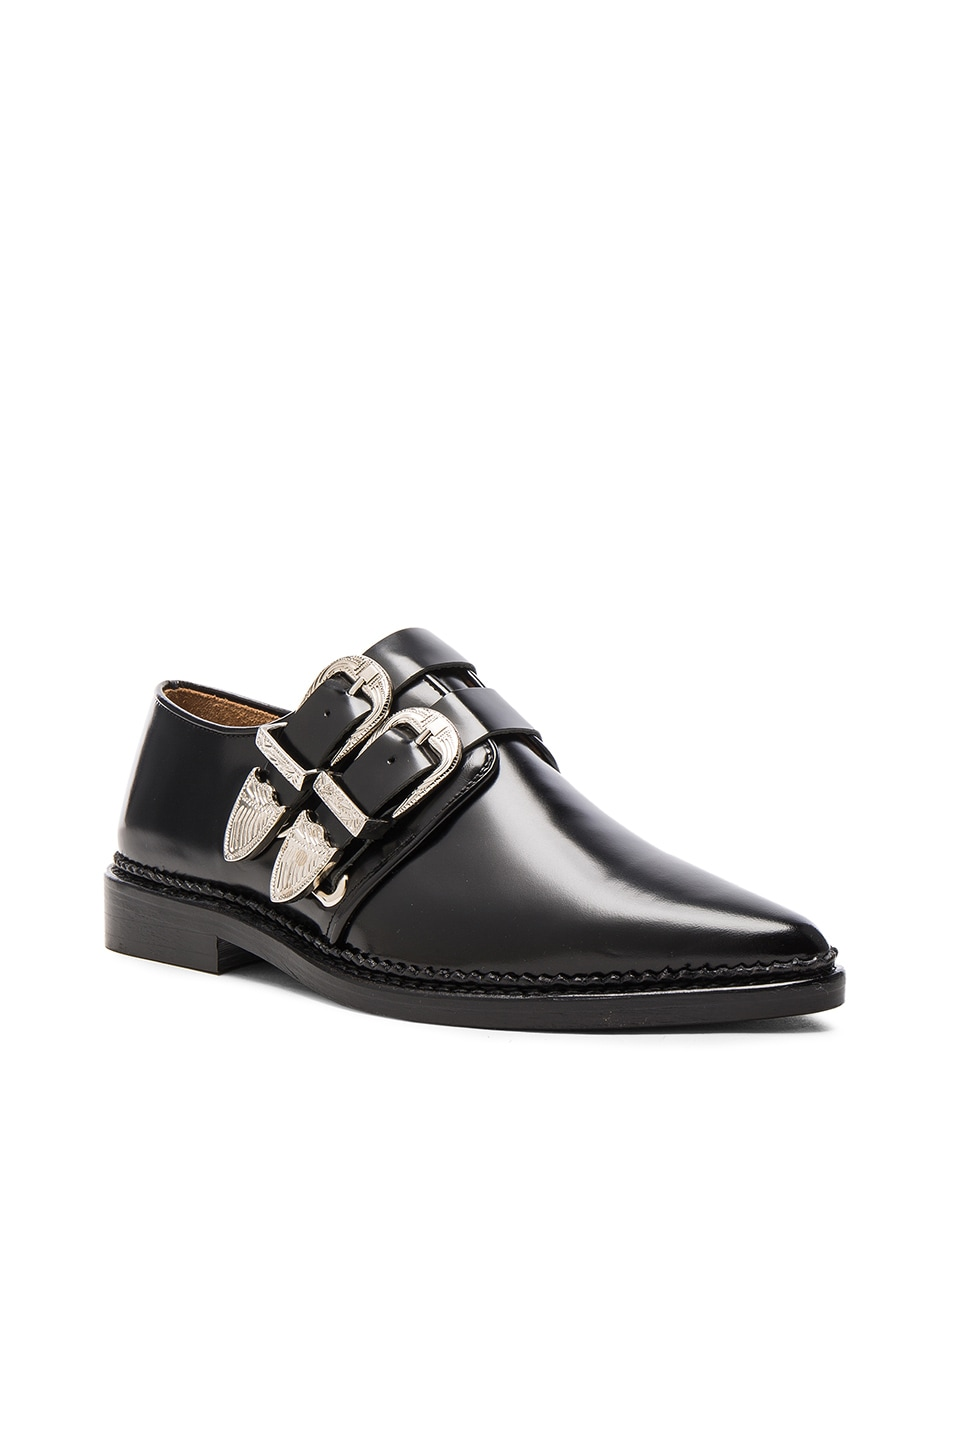 free shipping footlocker latest collections online Toga Pulla Black Buckles Oxfords LRJa90